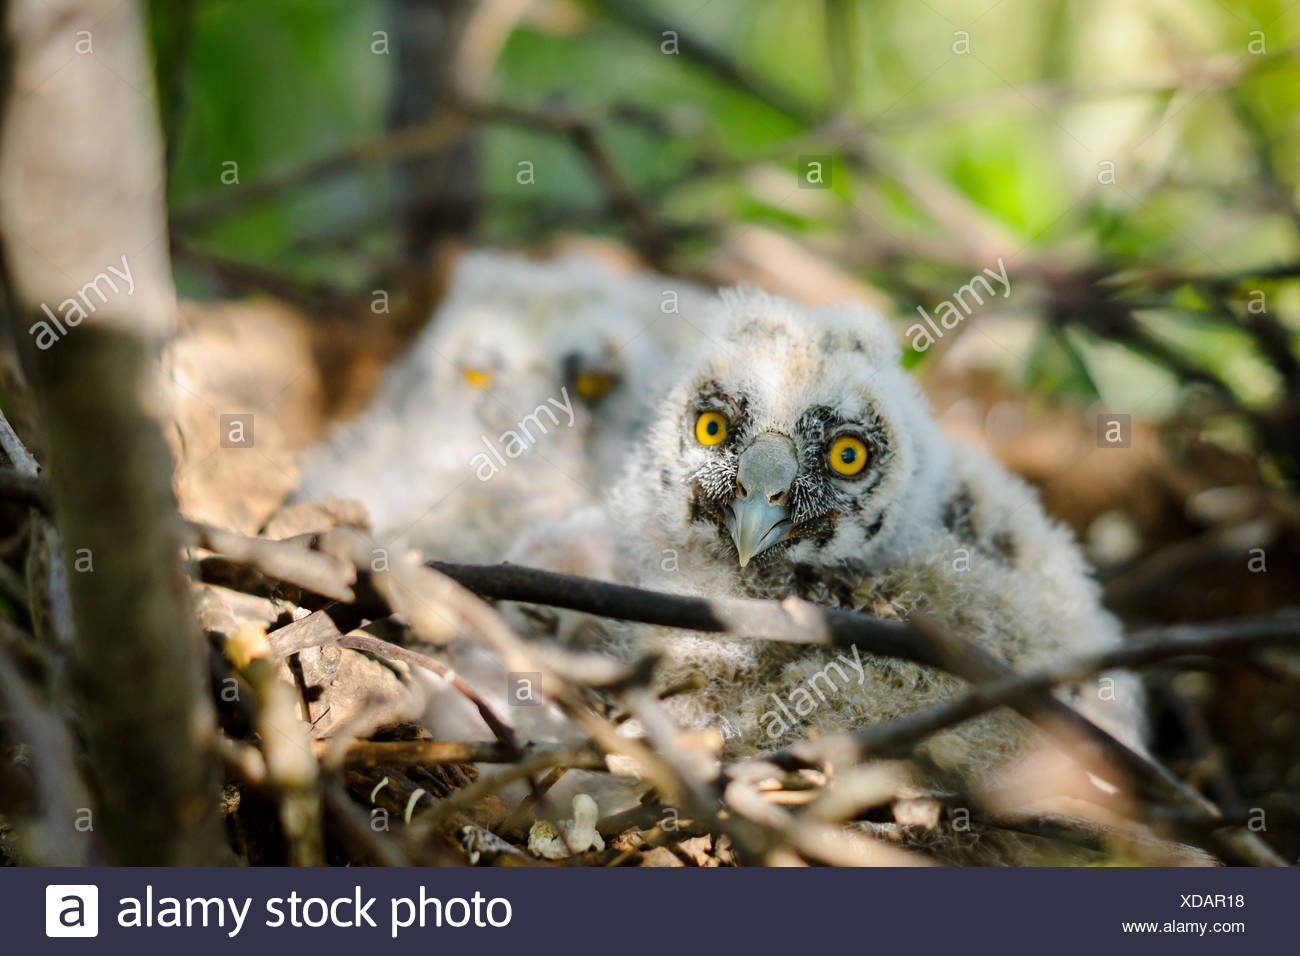 Long-eared owl little chicks in the nest - Stock Image